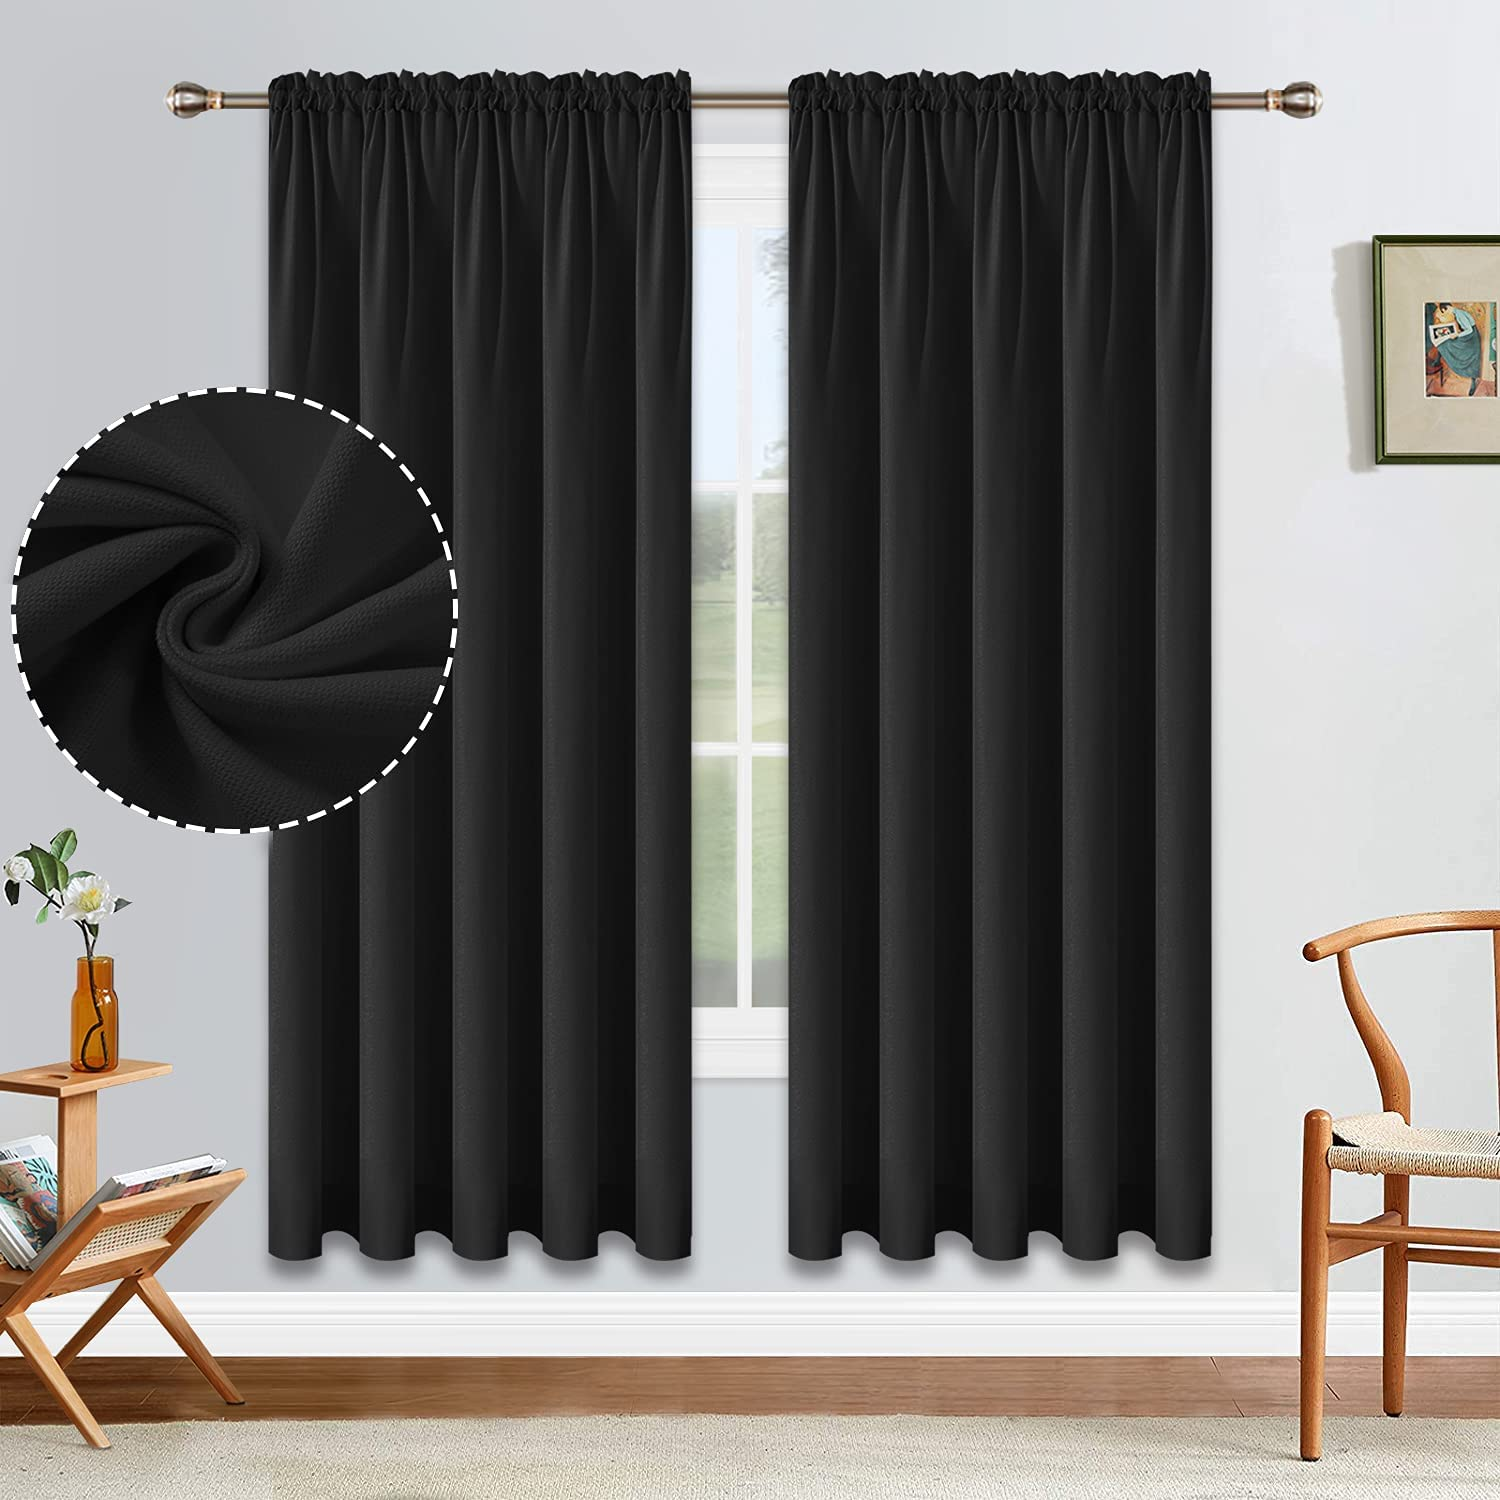 security ALLJOY Black Blackout Curtains 72 Inch 2 R Inventory cleanup selling sale Panels Set Length of